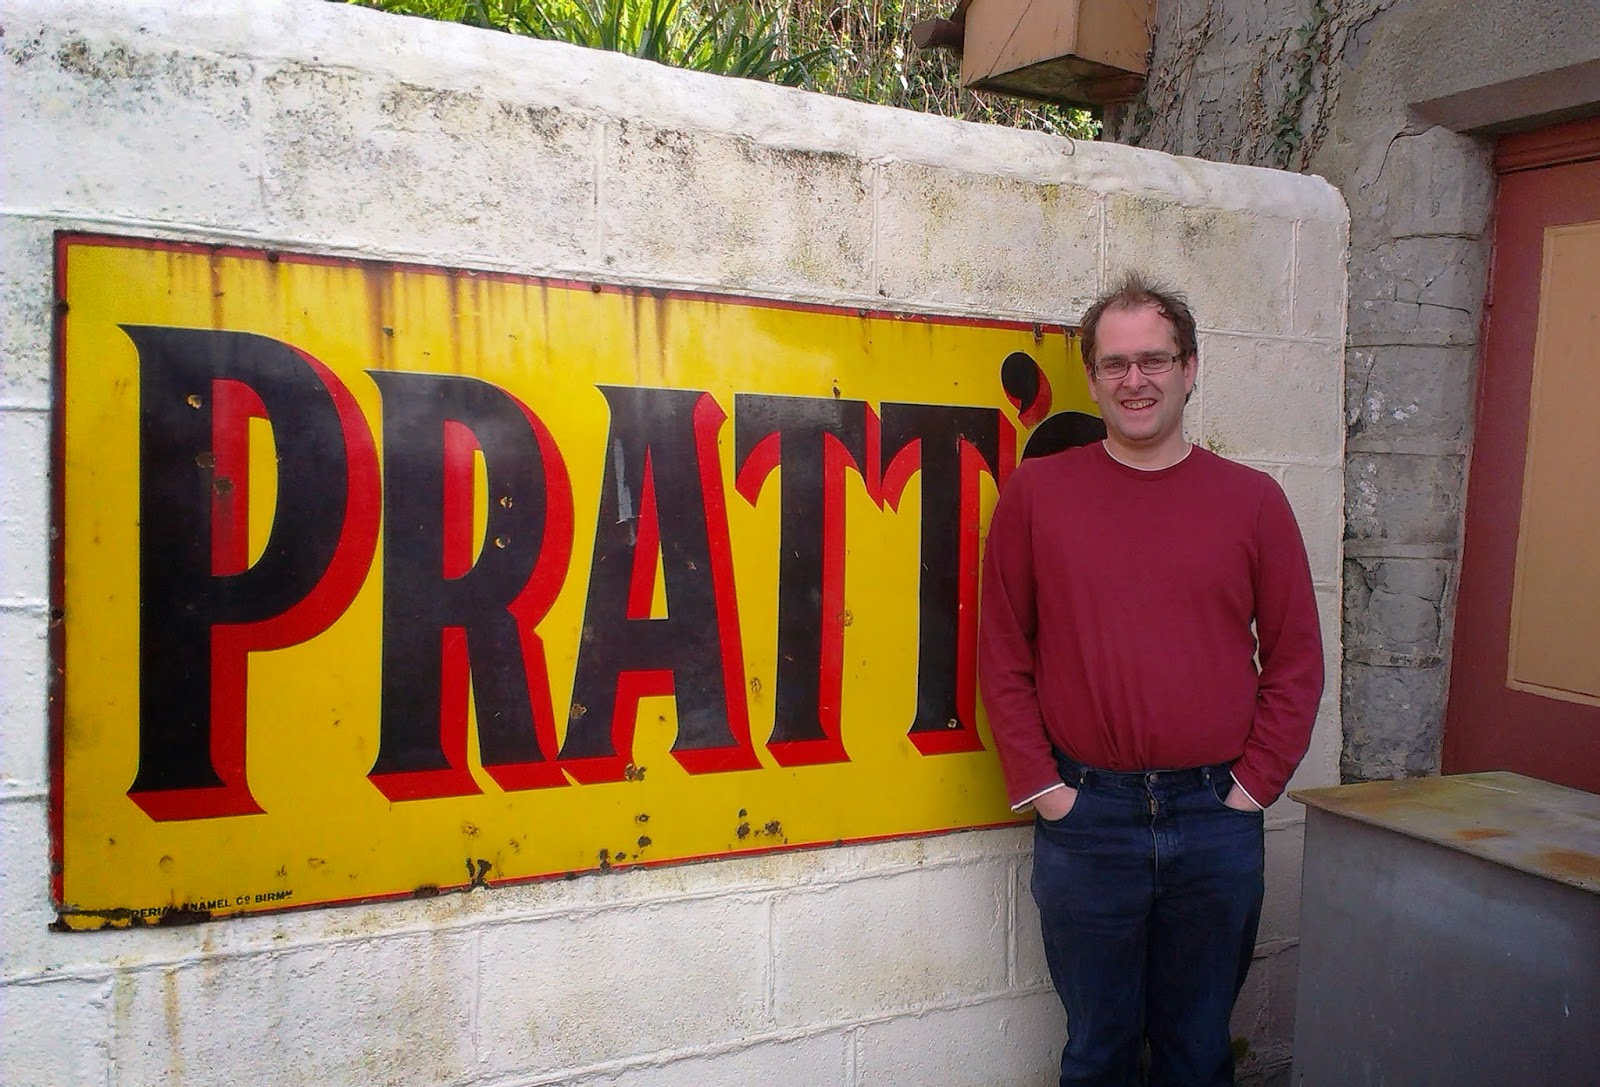 Andrew in front of a vintage Pratt's sign